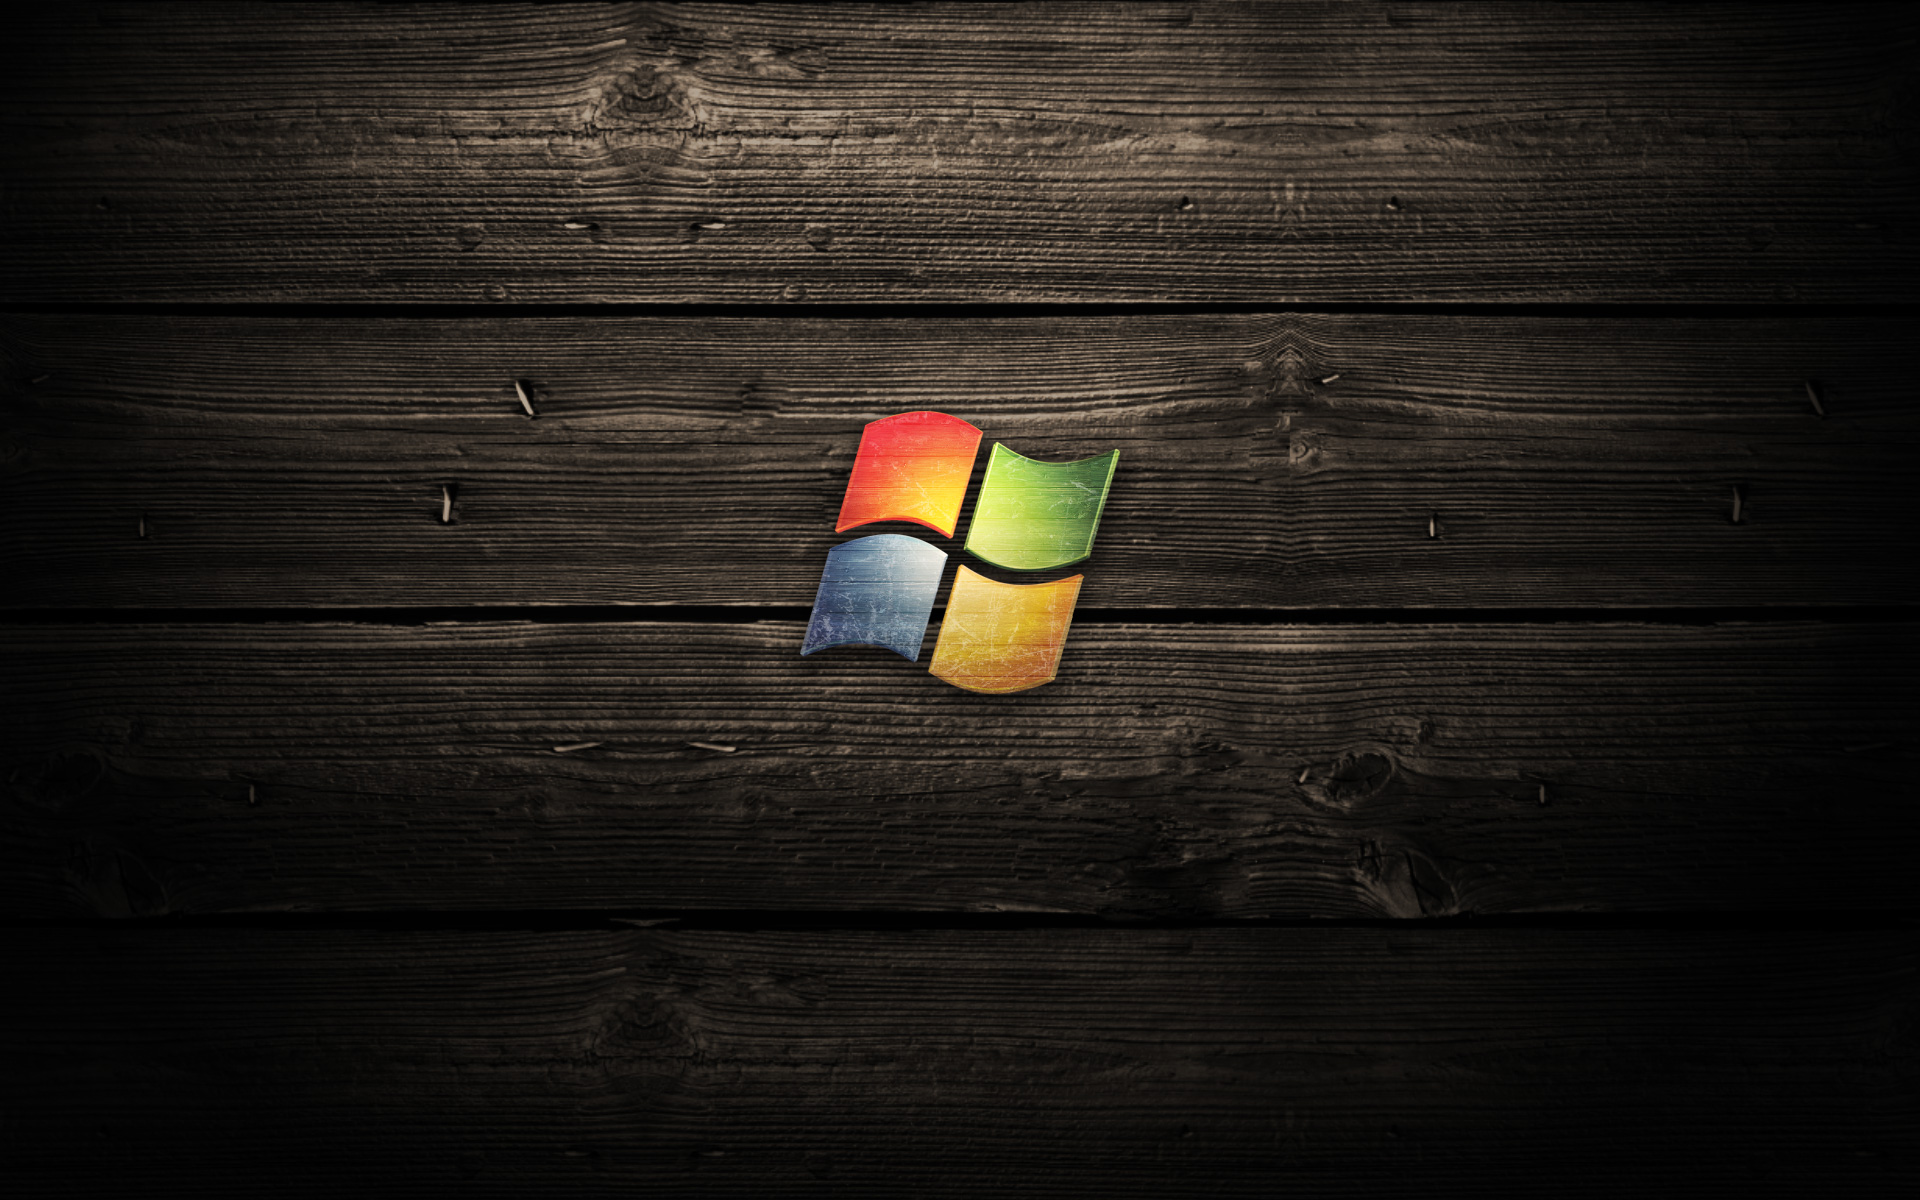 1920x1200 hd wallpaper for windows 7